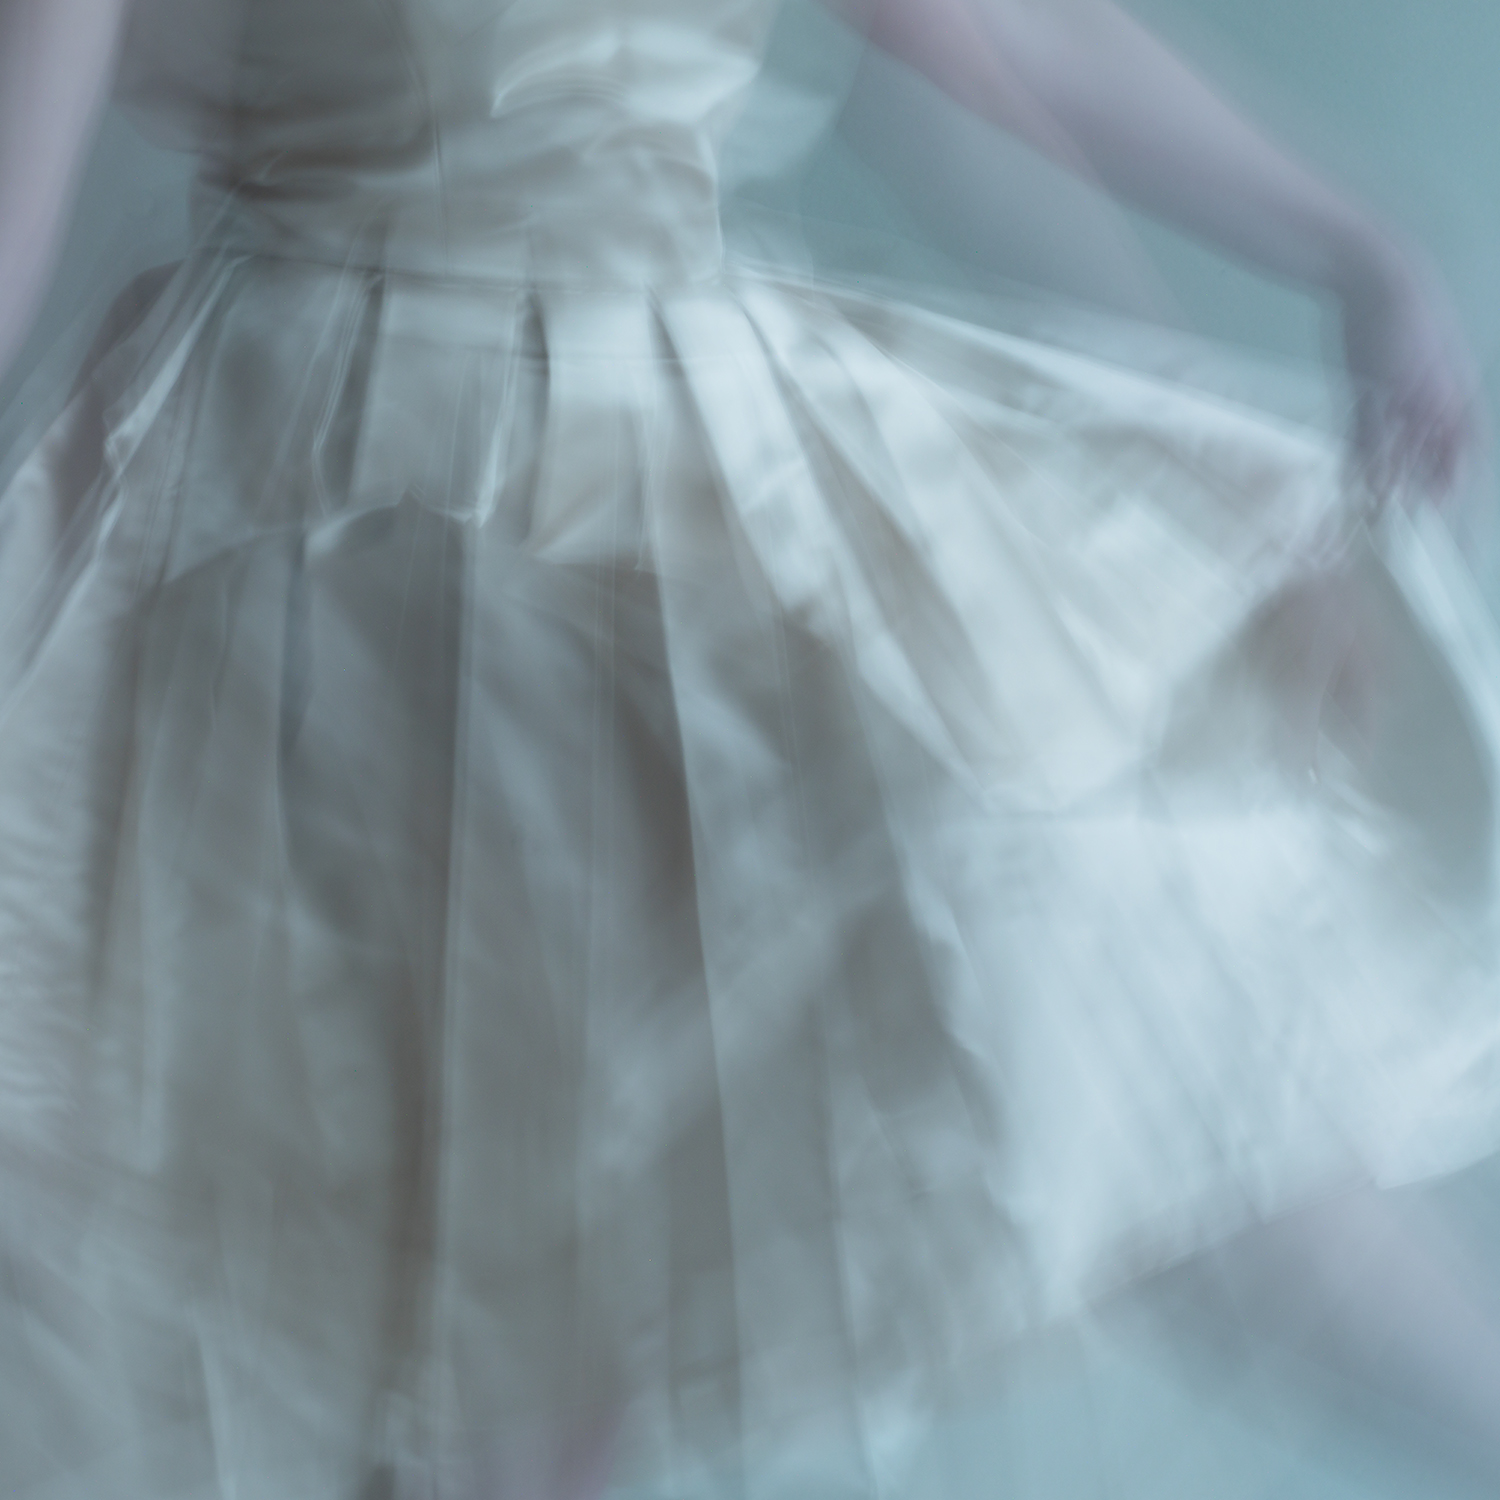 some joy, 7, 2014  20 x 20 in. Archival pigment print on Canson paper Edition of 5